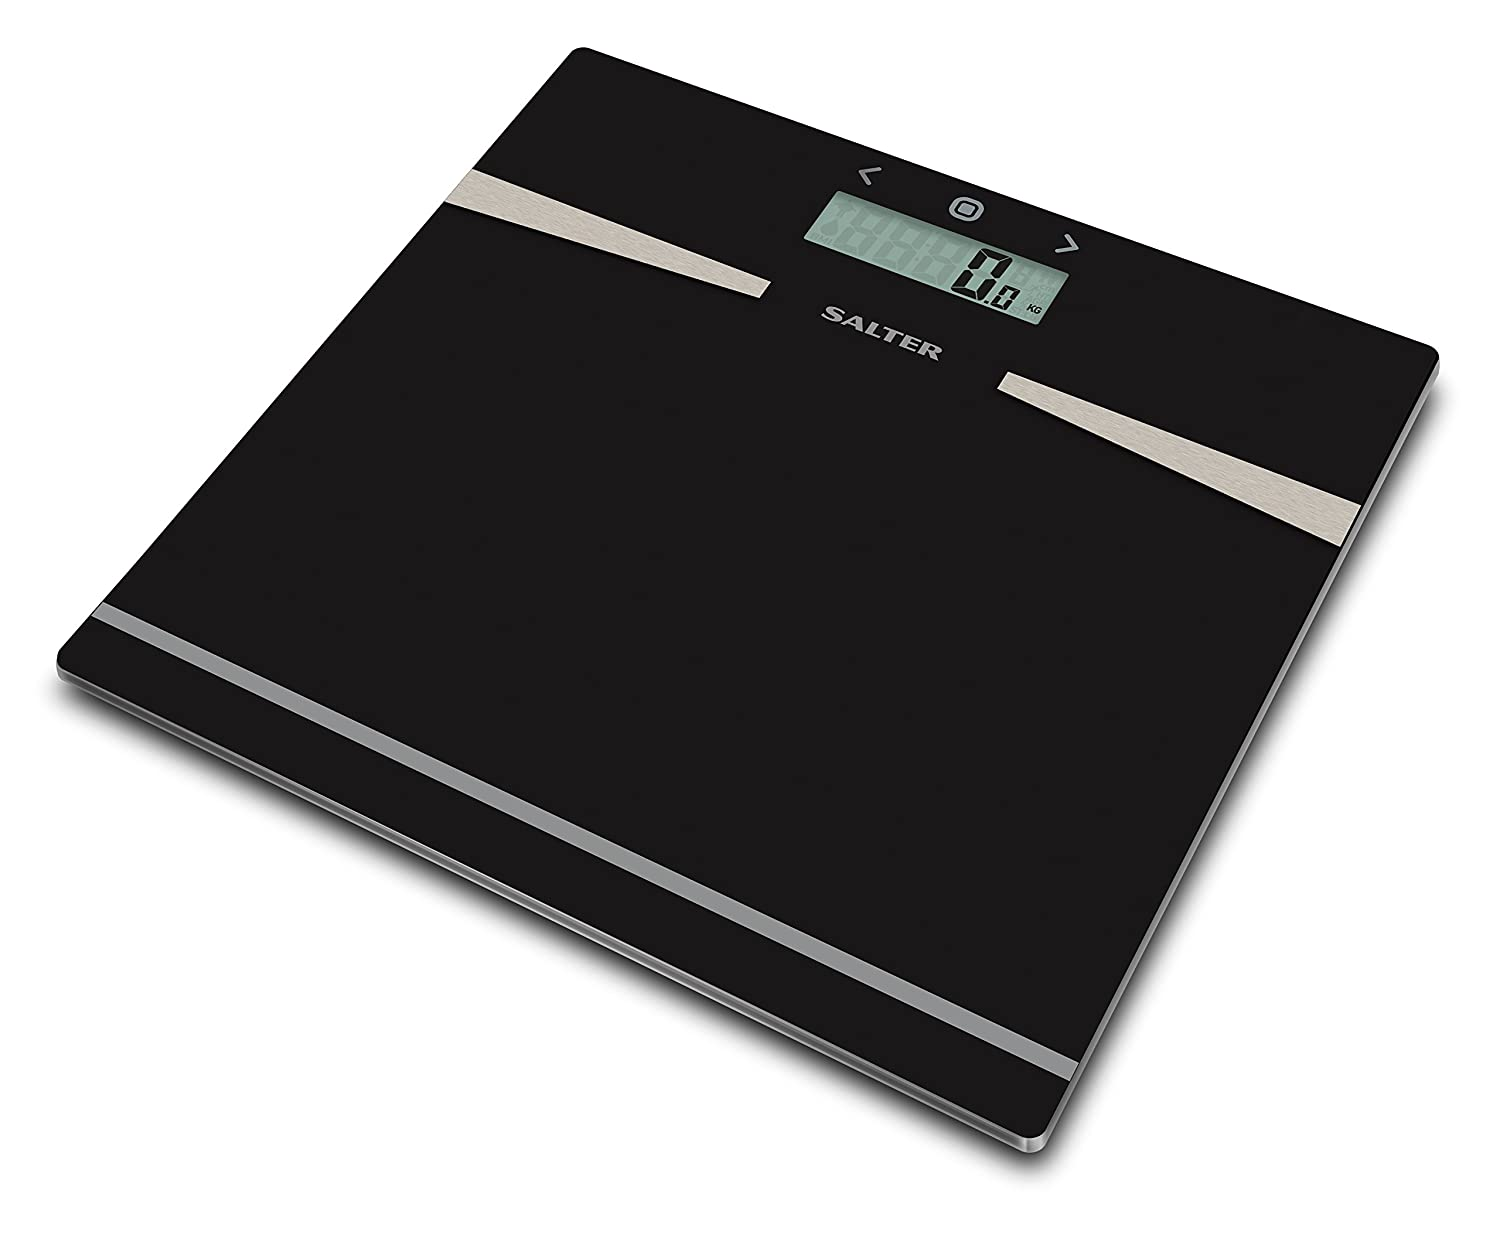 Salter Glass Body Analyser Bathroom Scales, Measure Weight BMI Body Fat Body Water, Ultra Slim Toughened Glass, 12 User Memory, Easy to Read Digital Display, Instant Reading Step-On Feature - Black FKA Brands Ltd 9121 BK3R